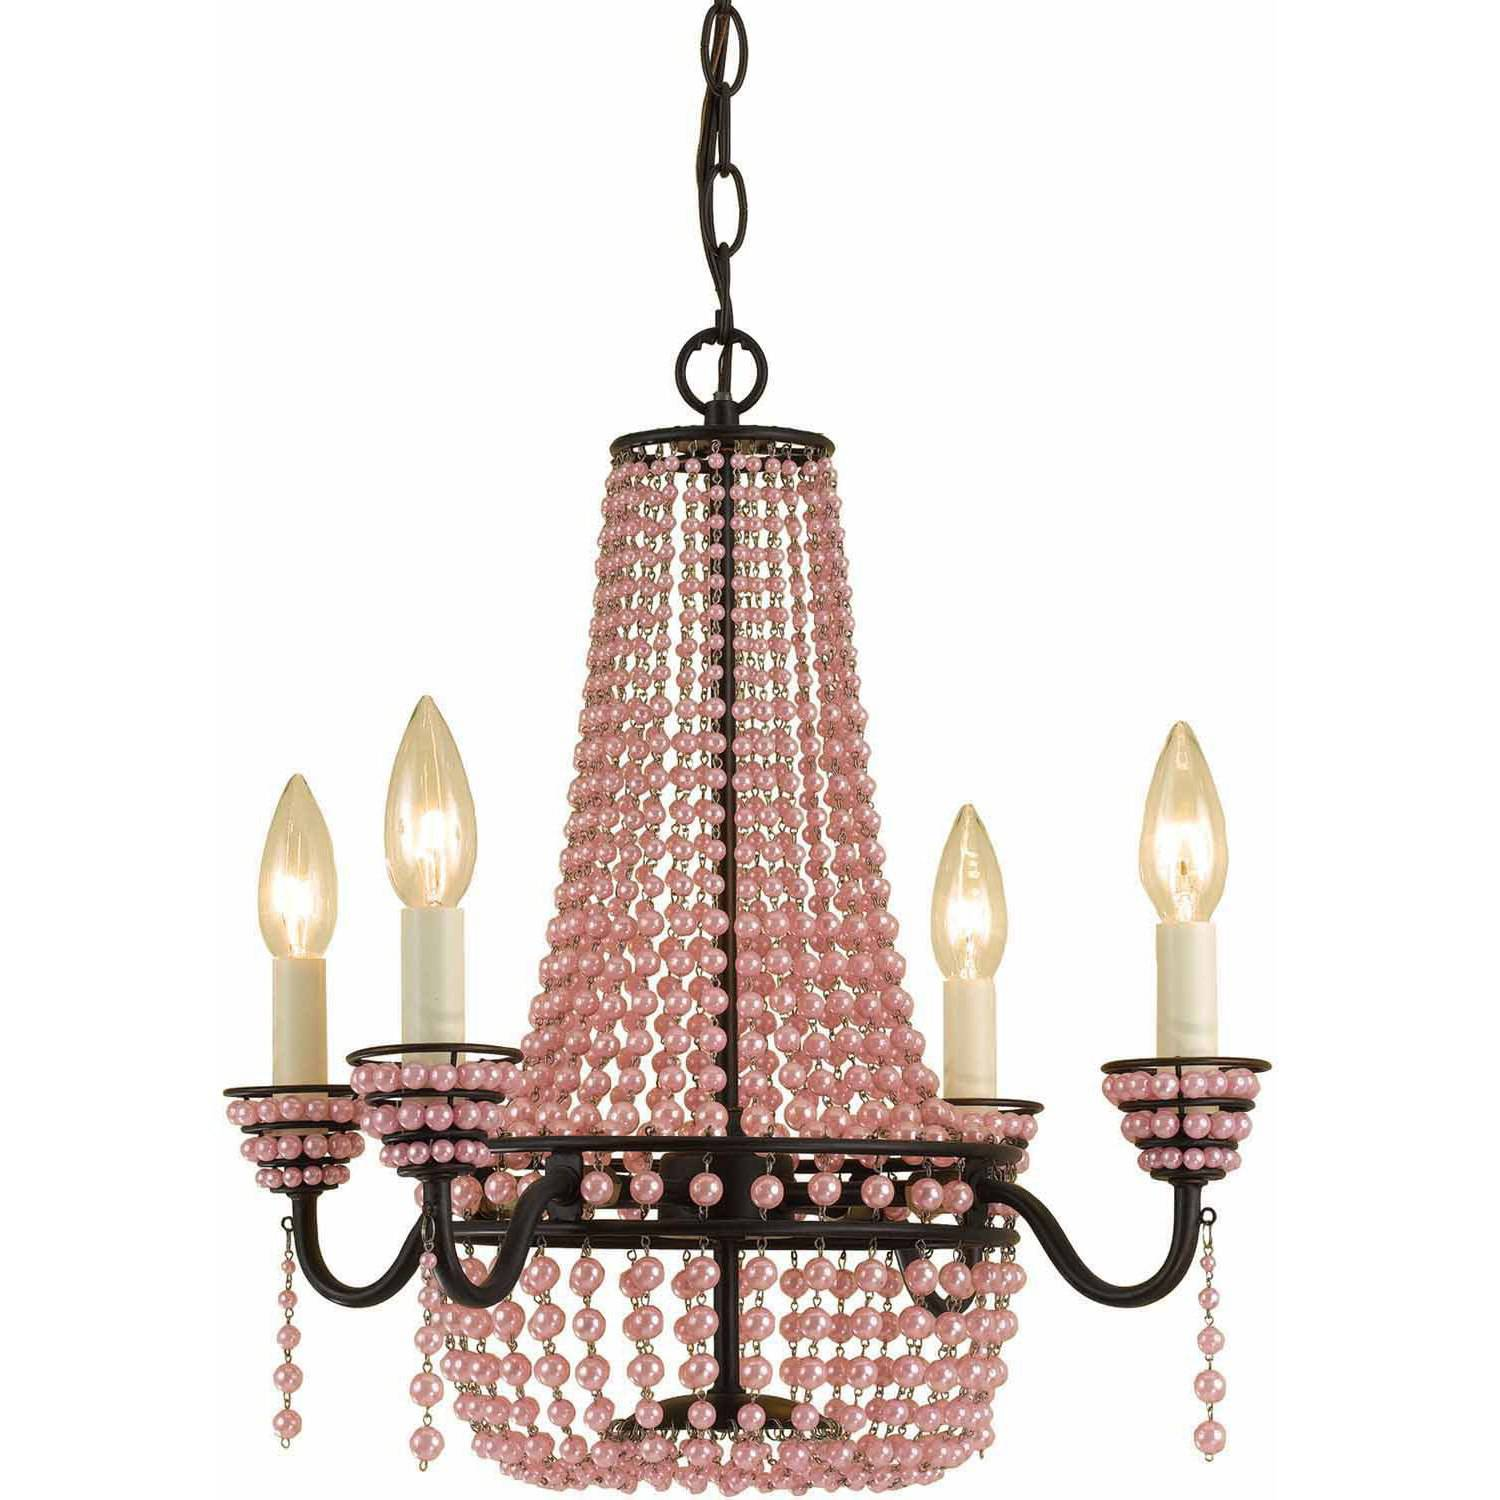 Parlor Elements Mini Chandelier